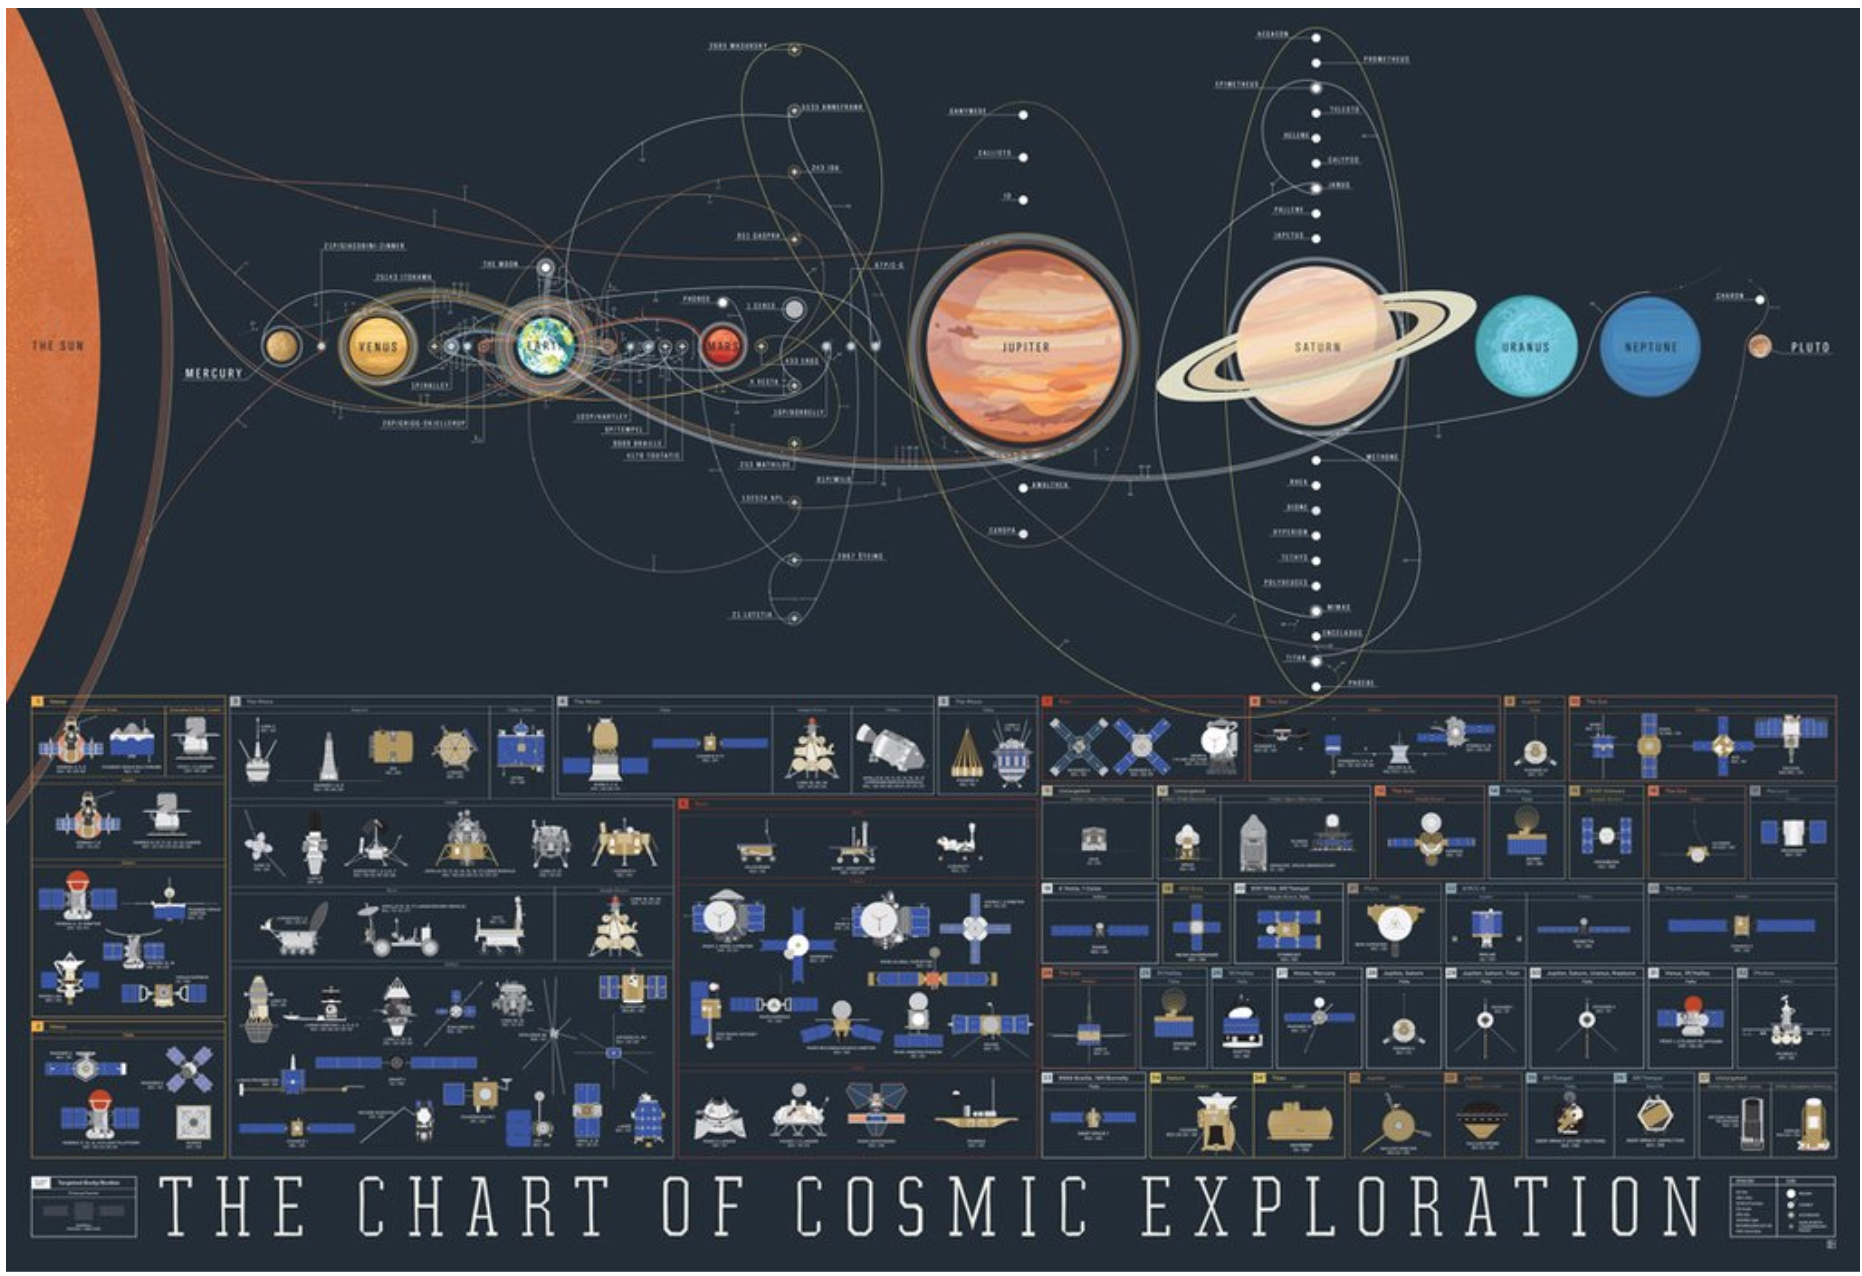 The Chart of Cosmic Exploration from Pop Chart Lab